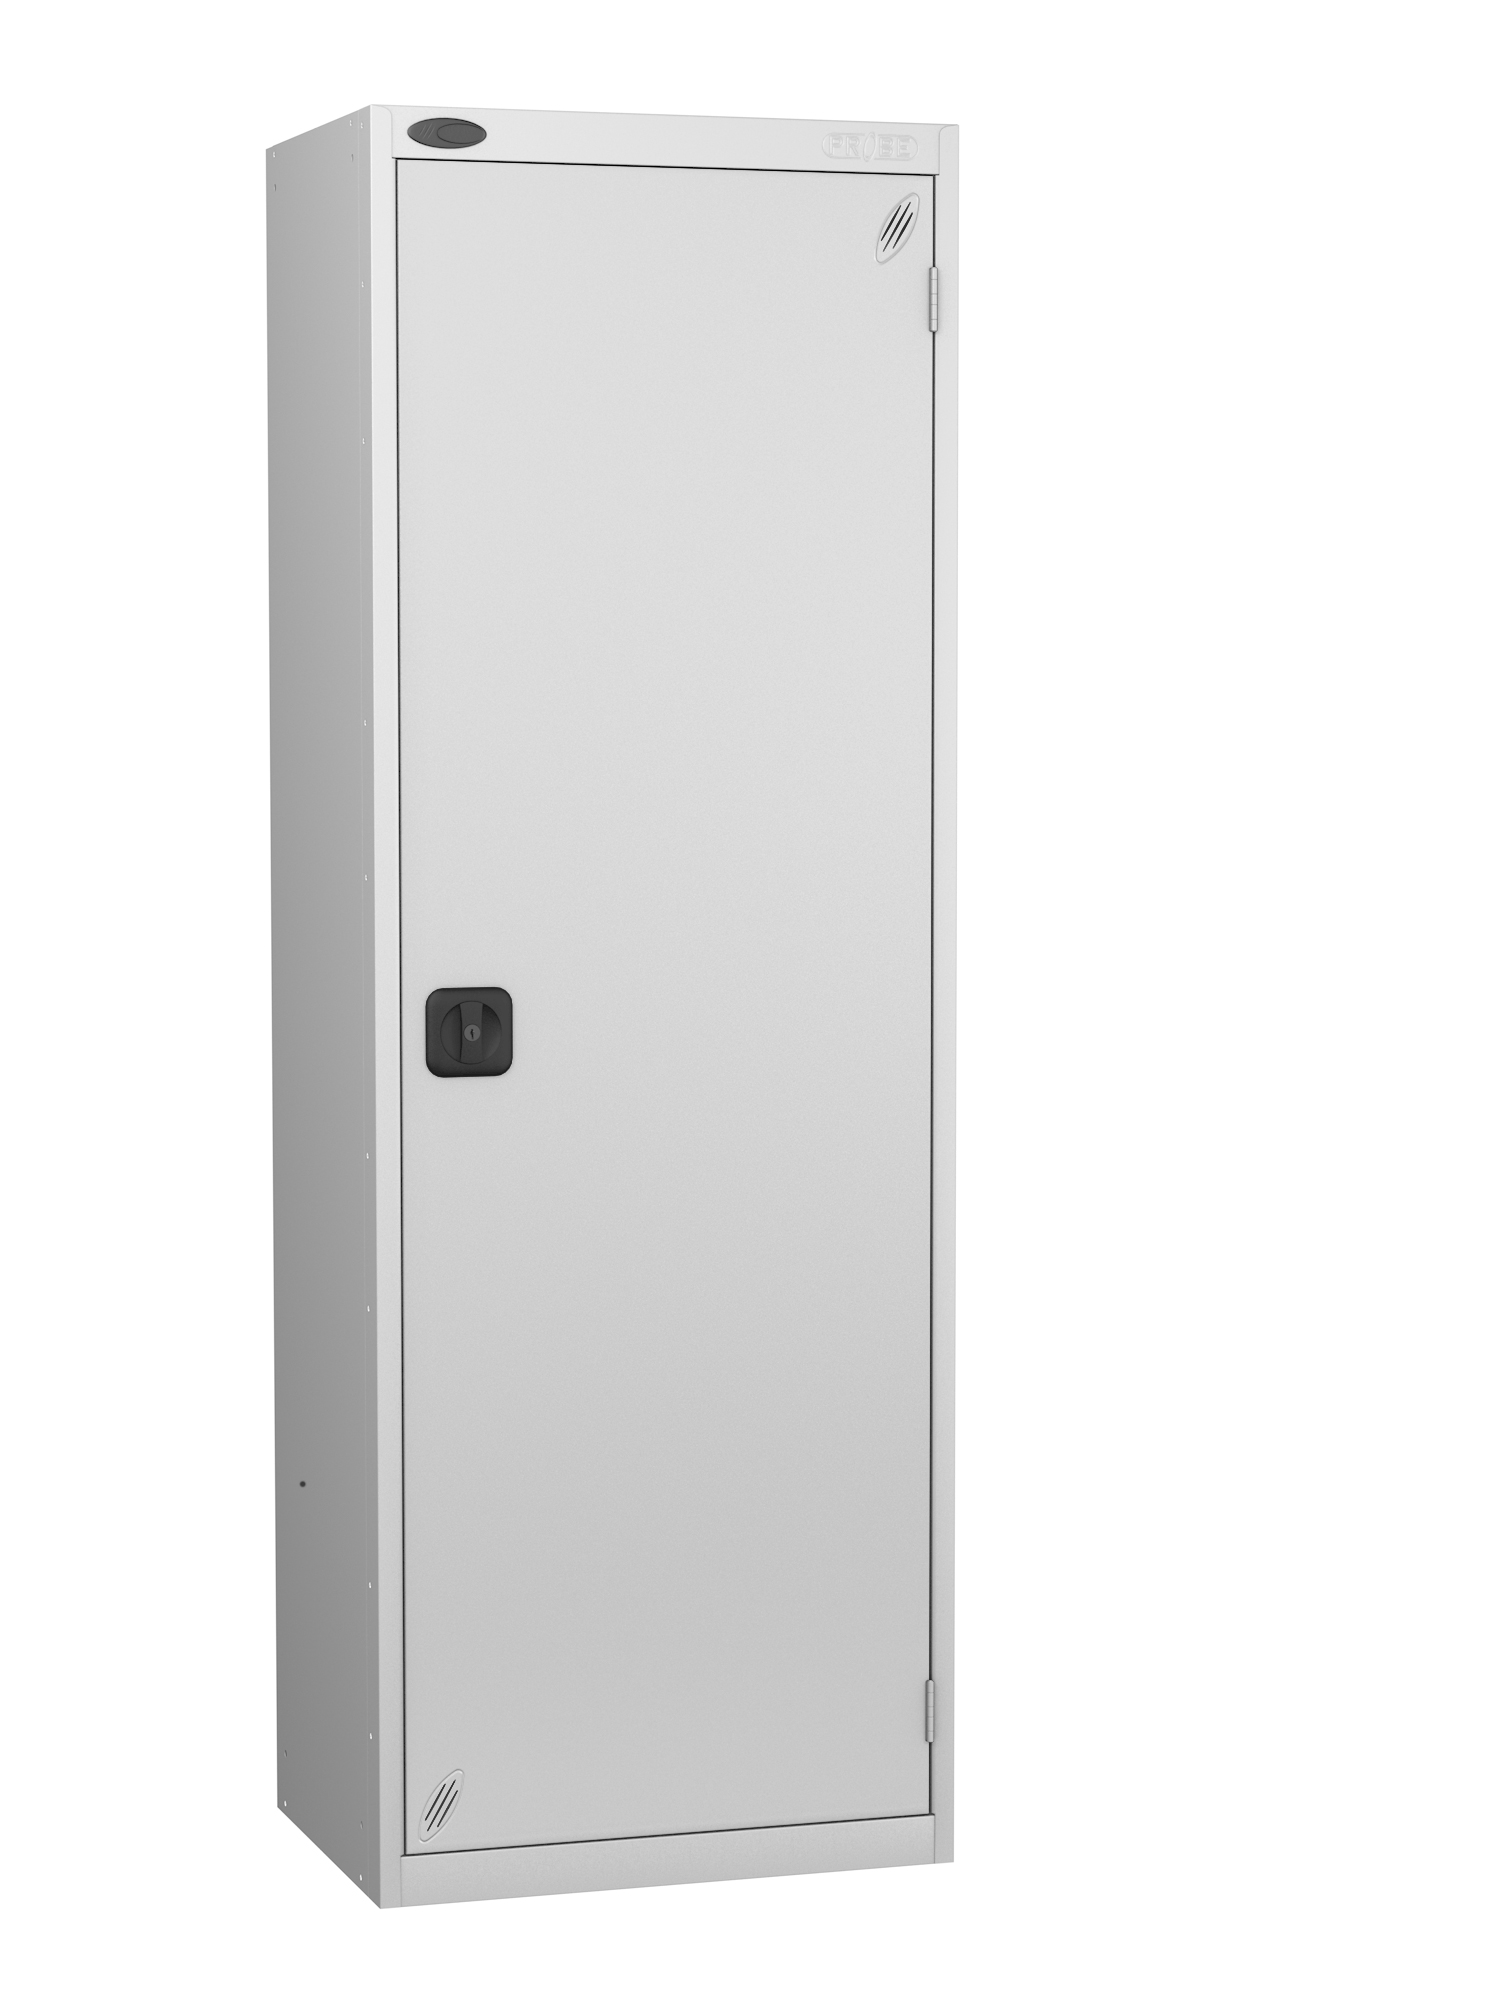 Probe high capacity specialist locker with silver door